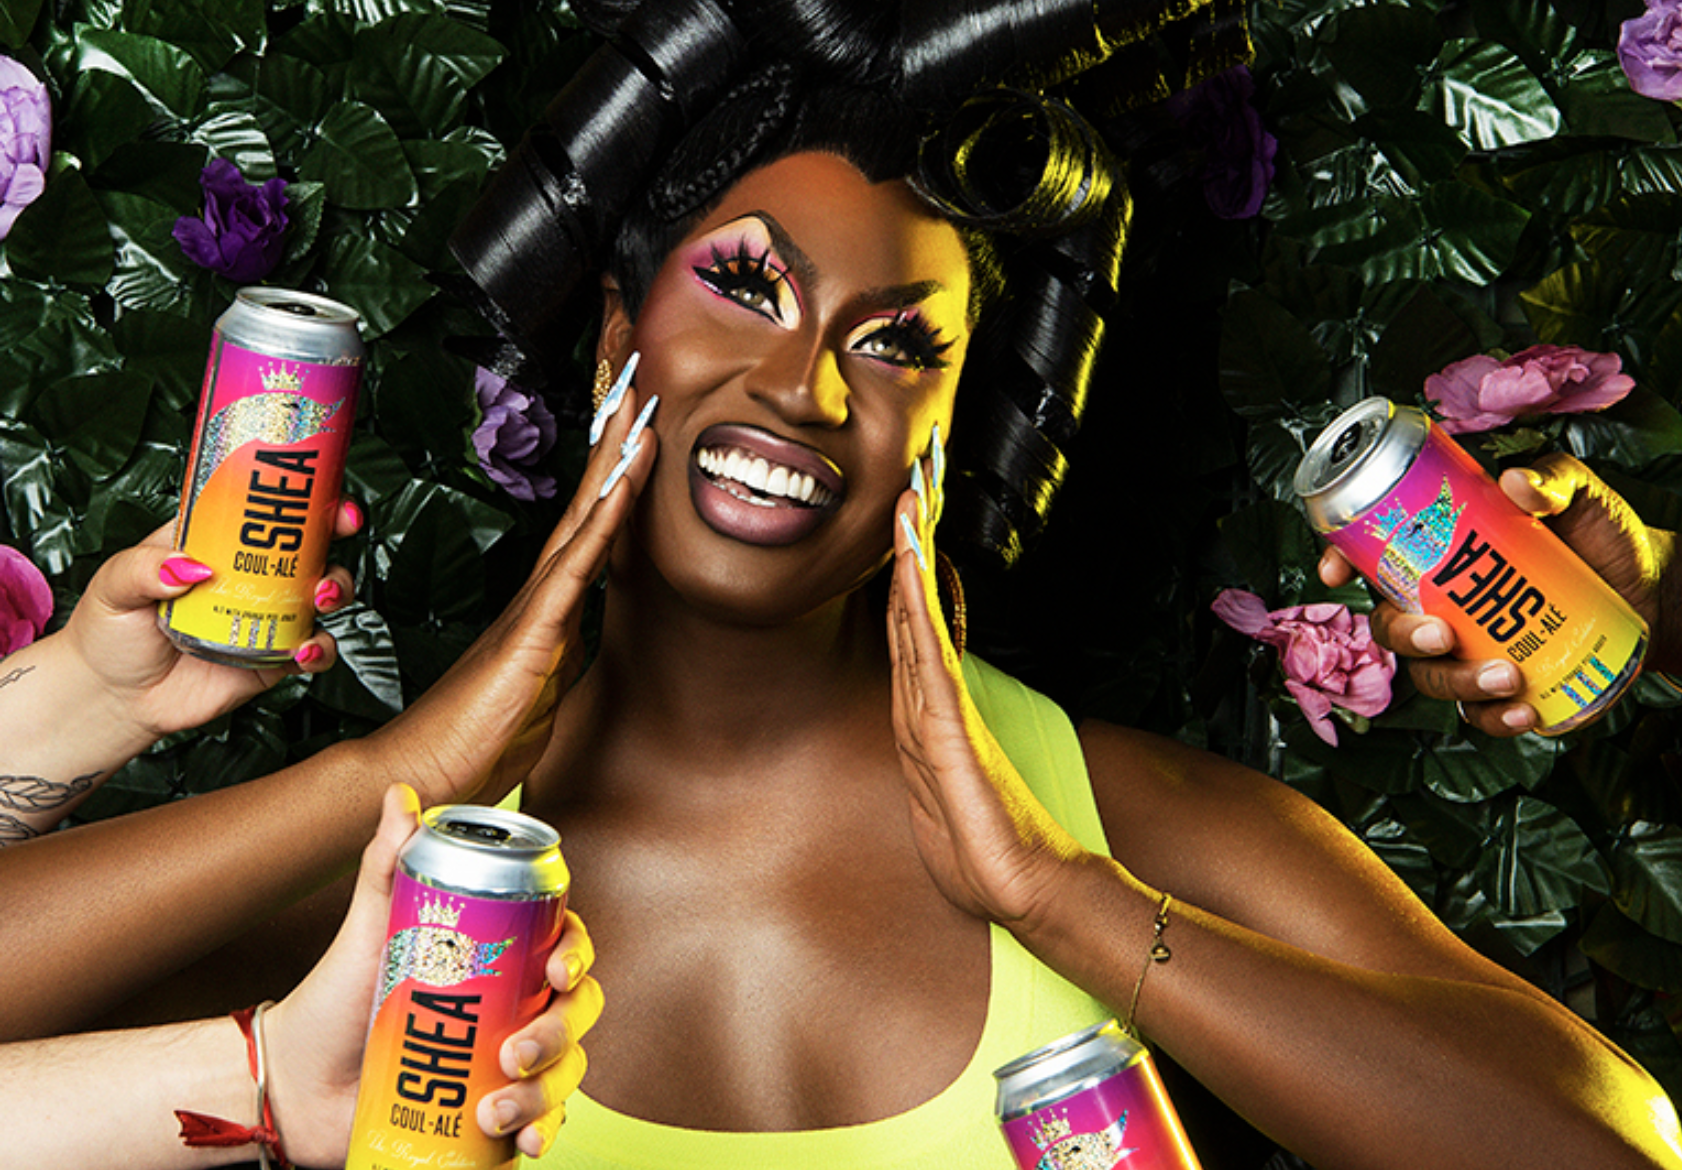 shea coulee and shea cool ale